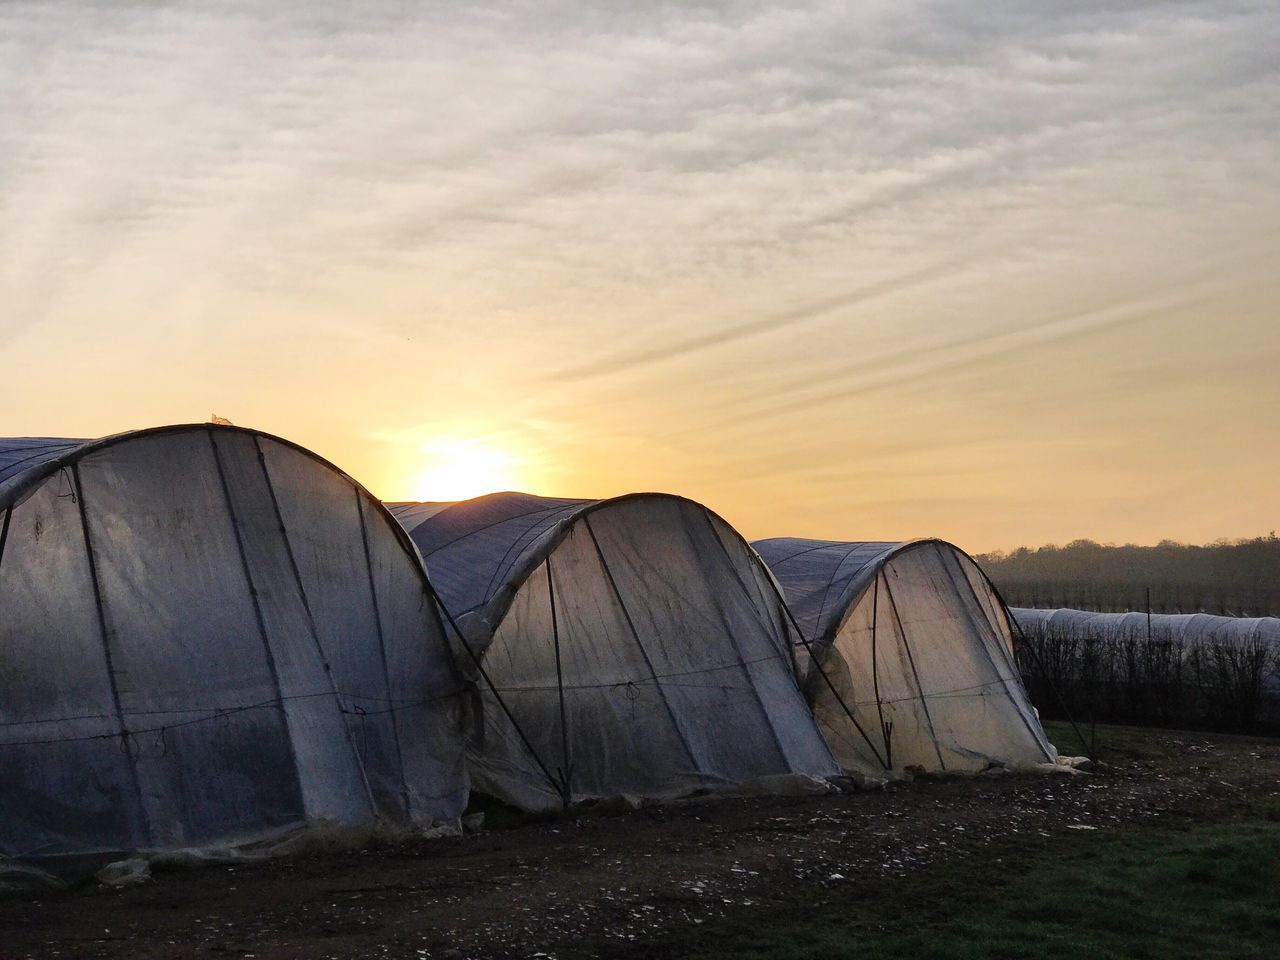 Sunrise over Tuesley Farm in Godalming, Surrey. Godalming Sky Sunset Built Structure Outdoors Nature No People Architecture Day Rural Surrey Surrey Hills Uk Sunrise_sunsets_aroundworld Sunrise Beauty In Nature Polytunnels Polytunnel Silhouettes Silhouette Landscape_Collection Farmland Nature Farm Farming